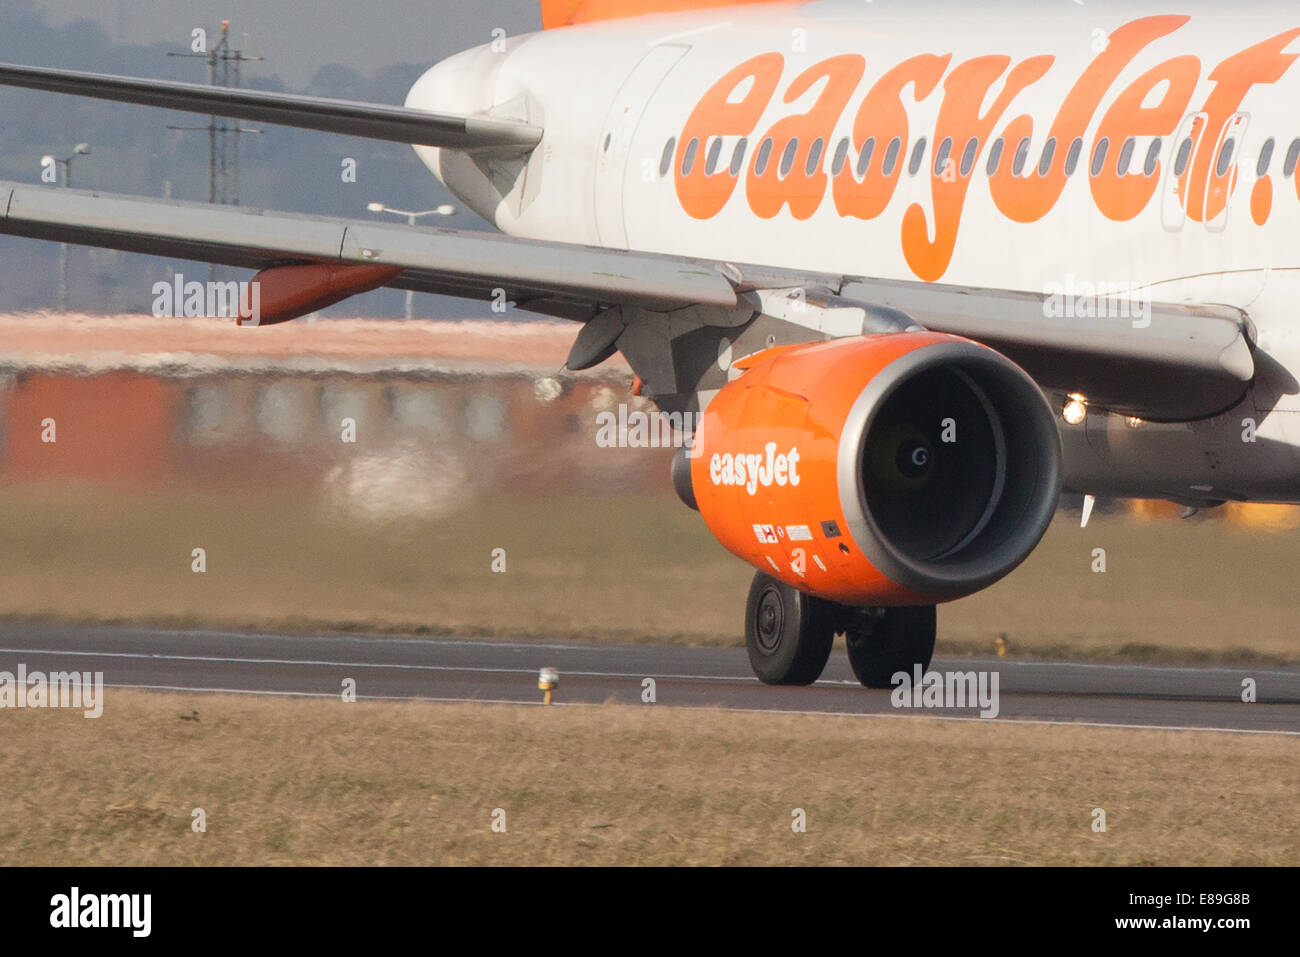 easyJet airbus preparing to takeoff at Luton Airport - Stock Image